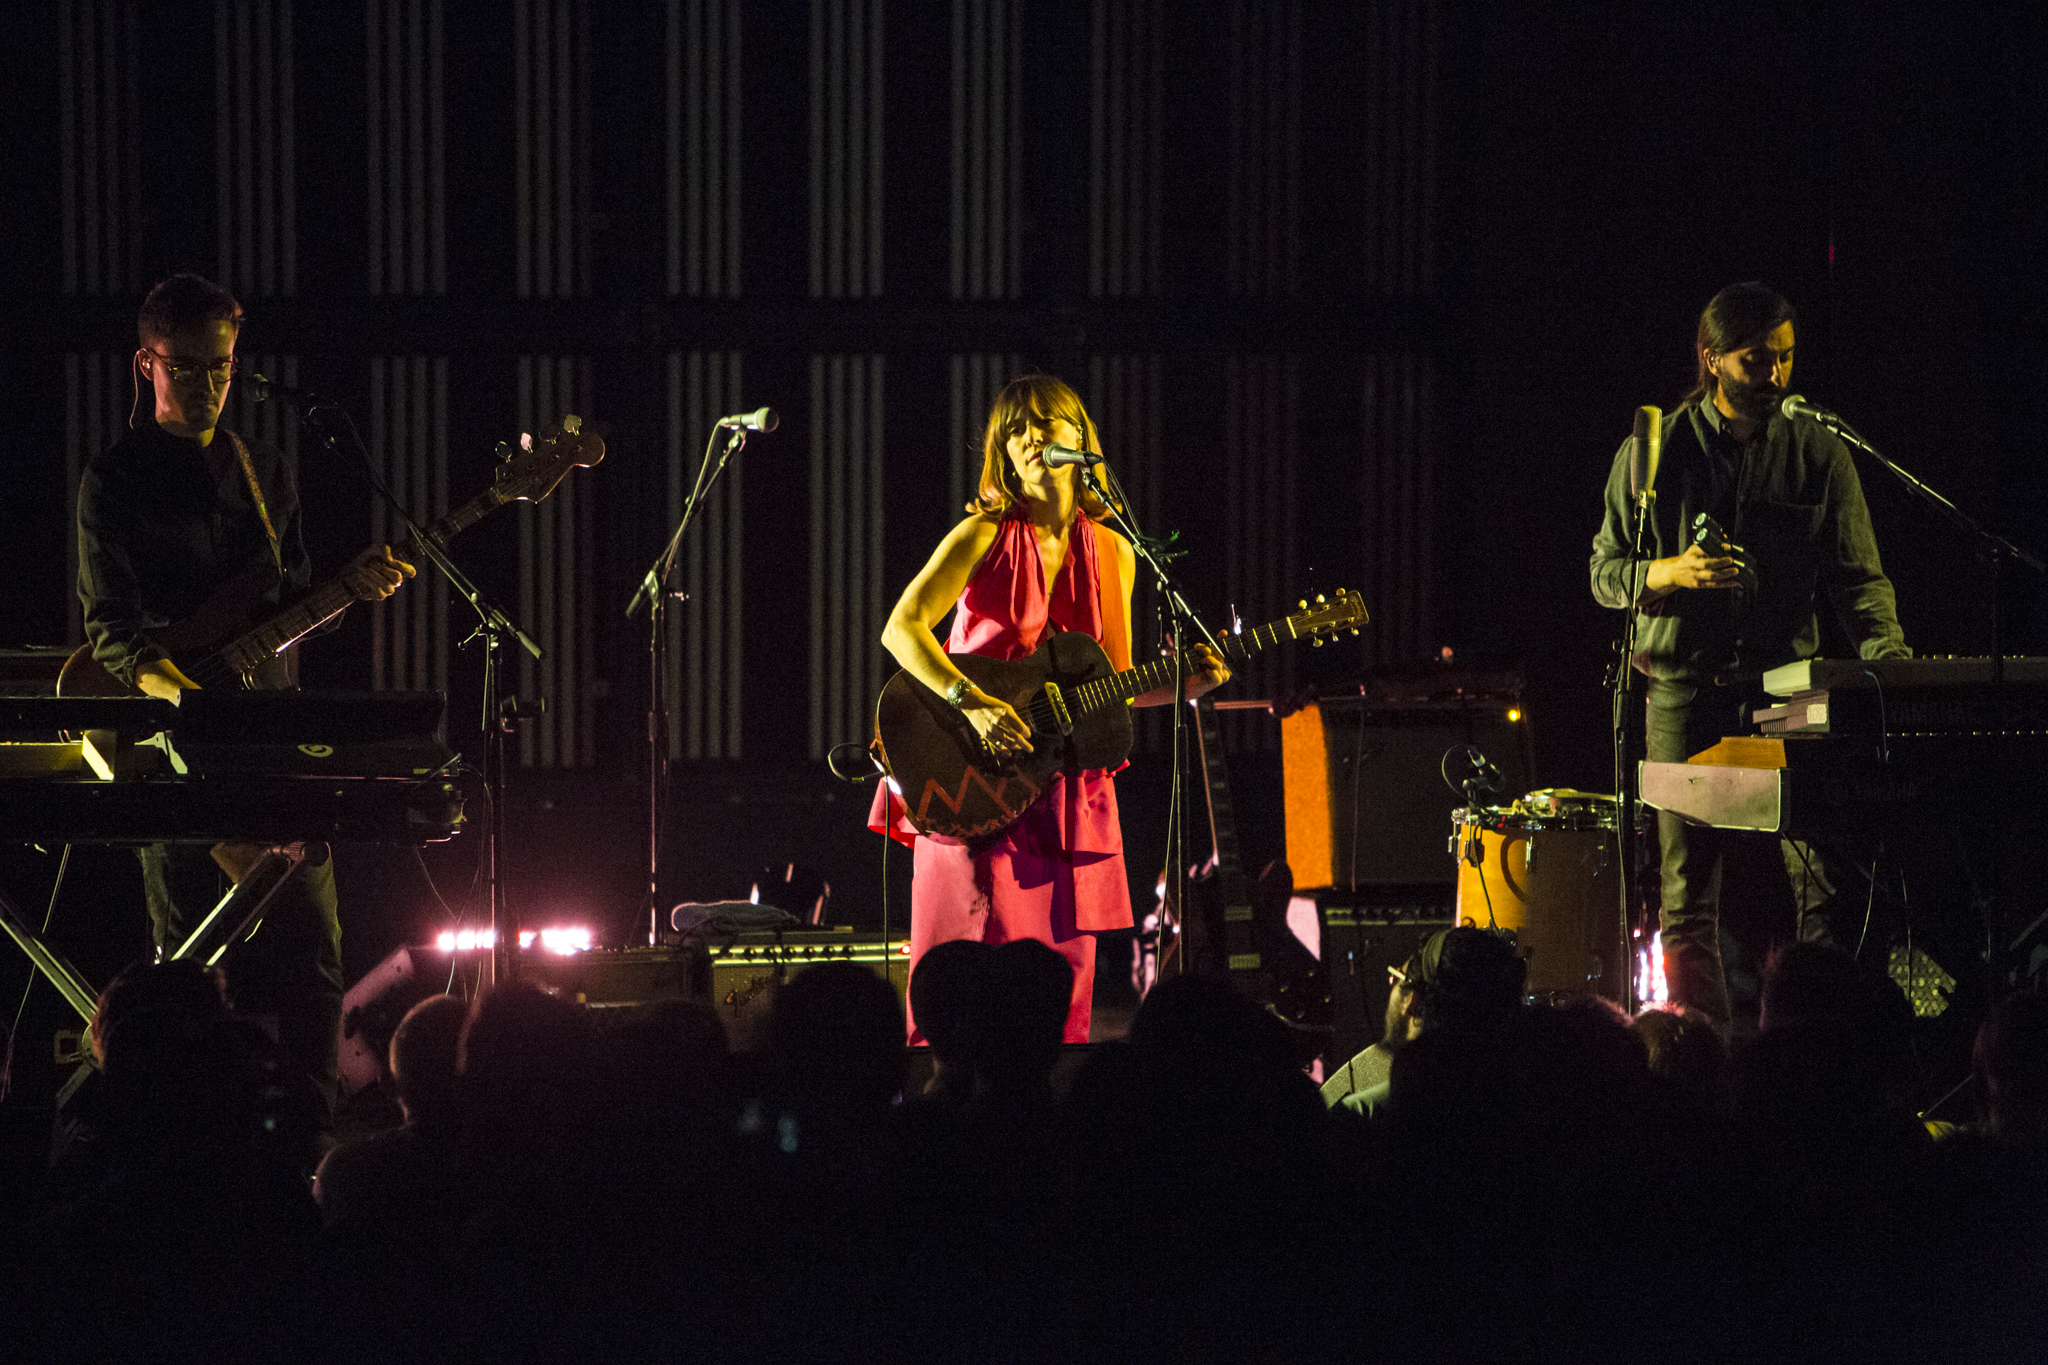 feist 5 Live Review: Feist Brings Pleasure to Los Angeles Palace Theatre (5/5)